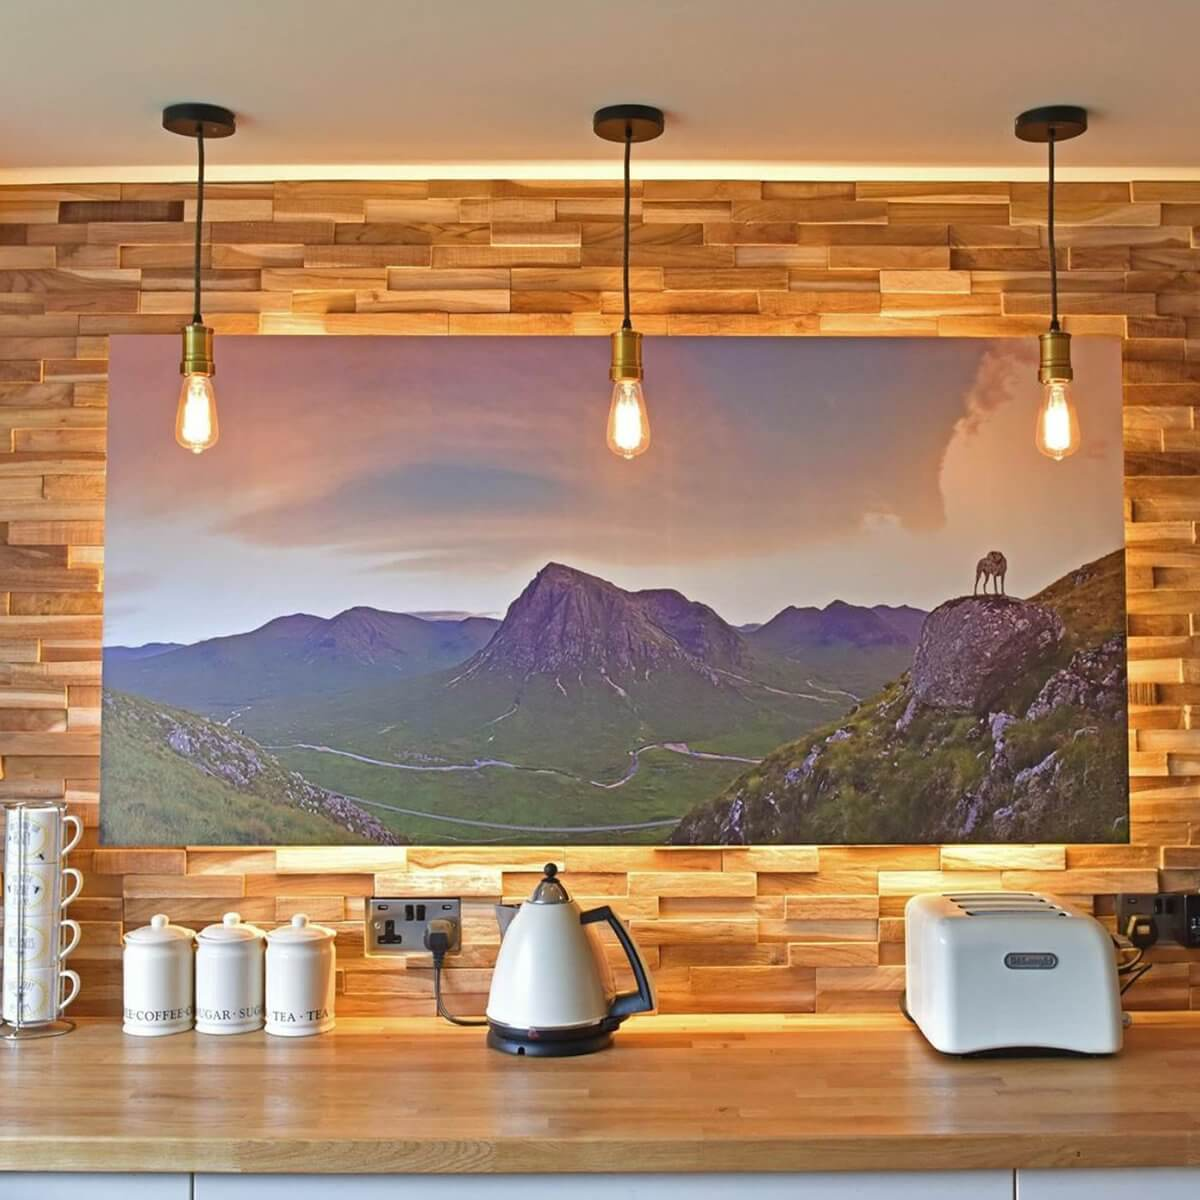 Design & Signage, large wall poster prints, wall art